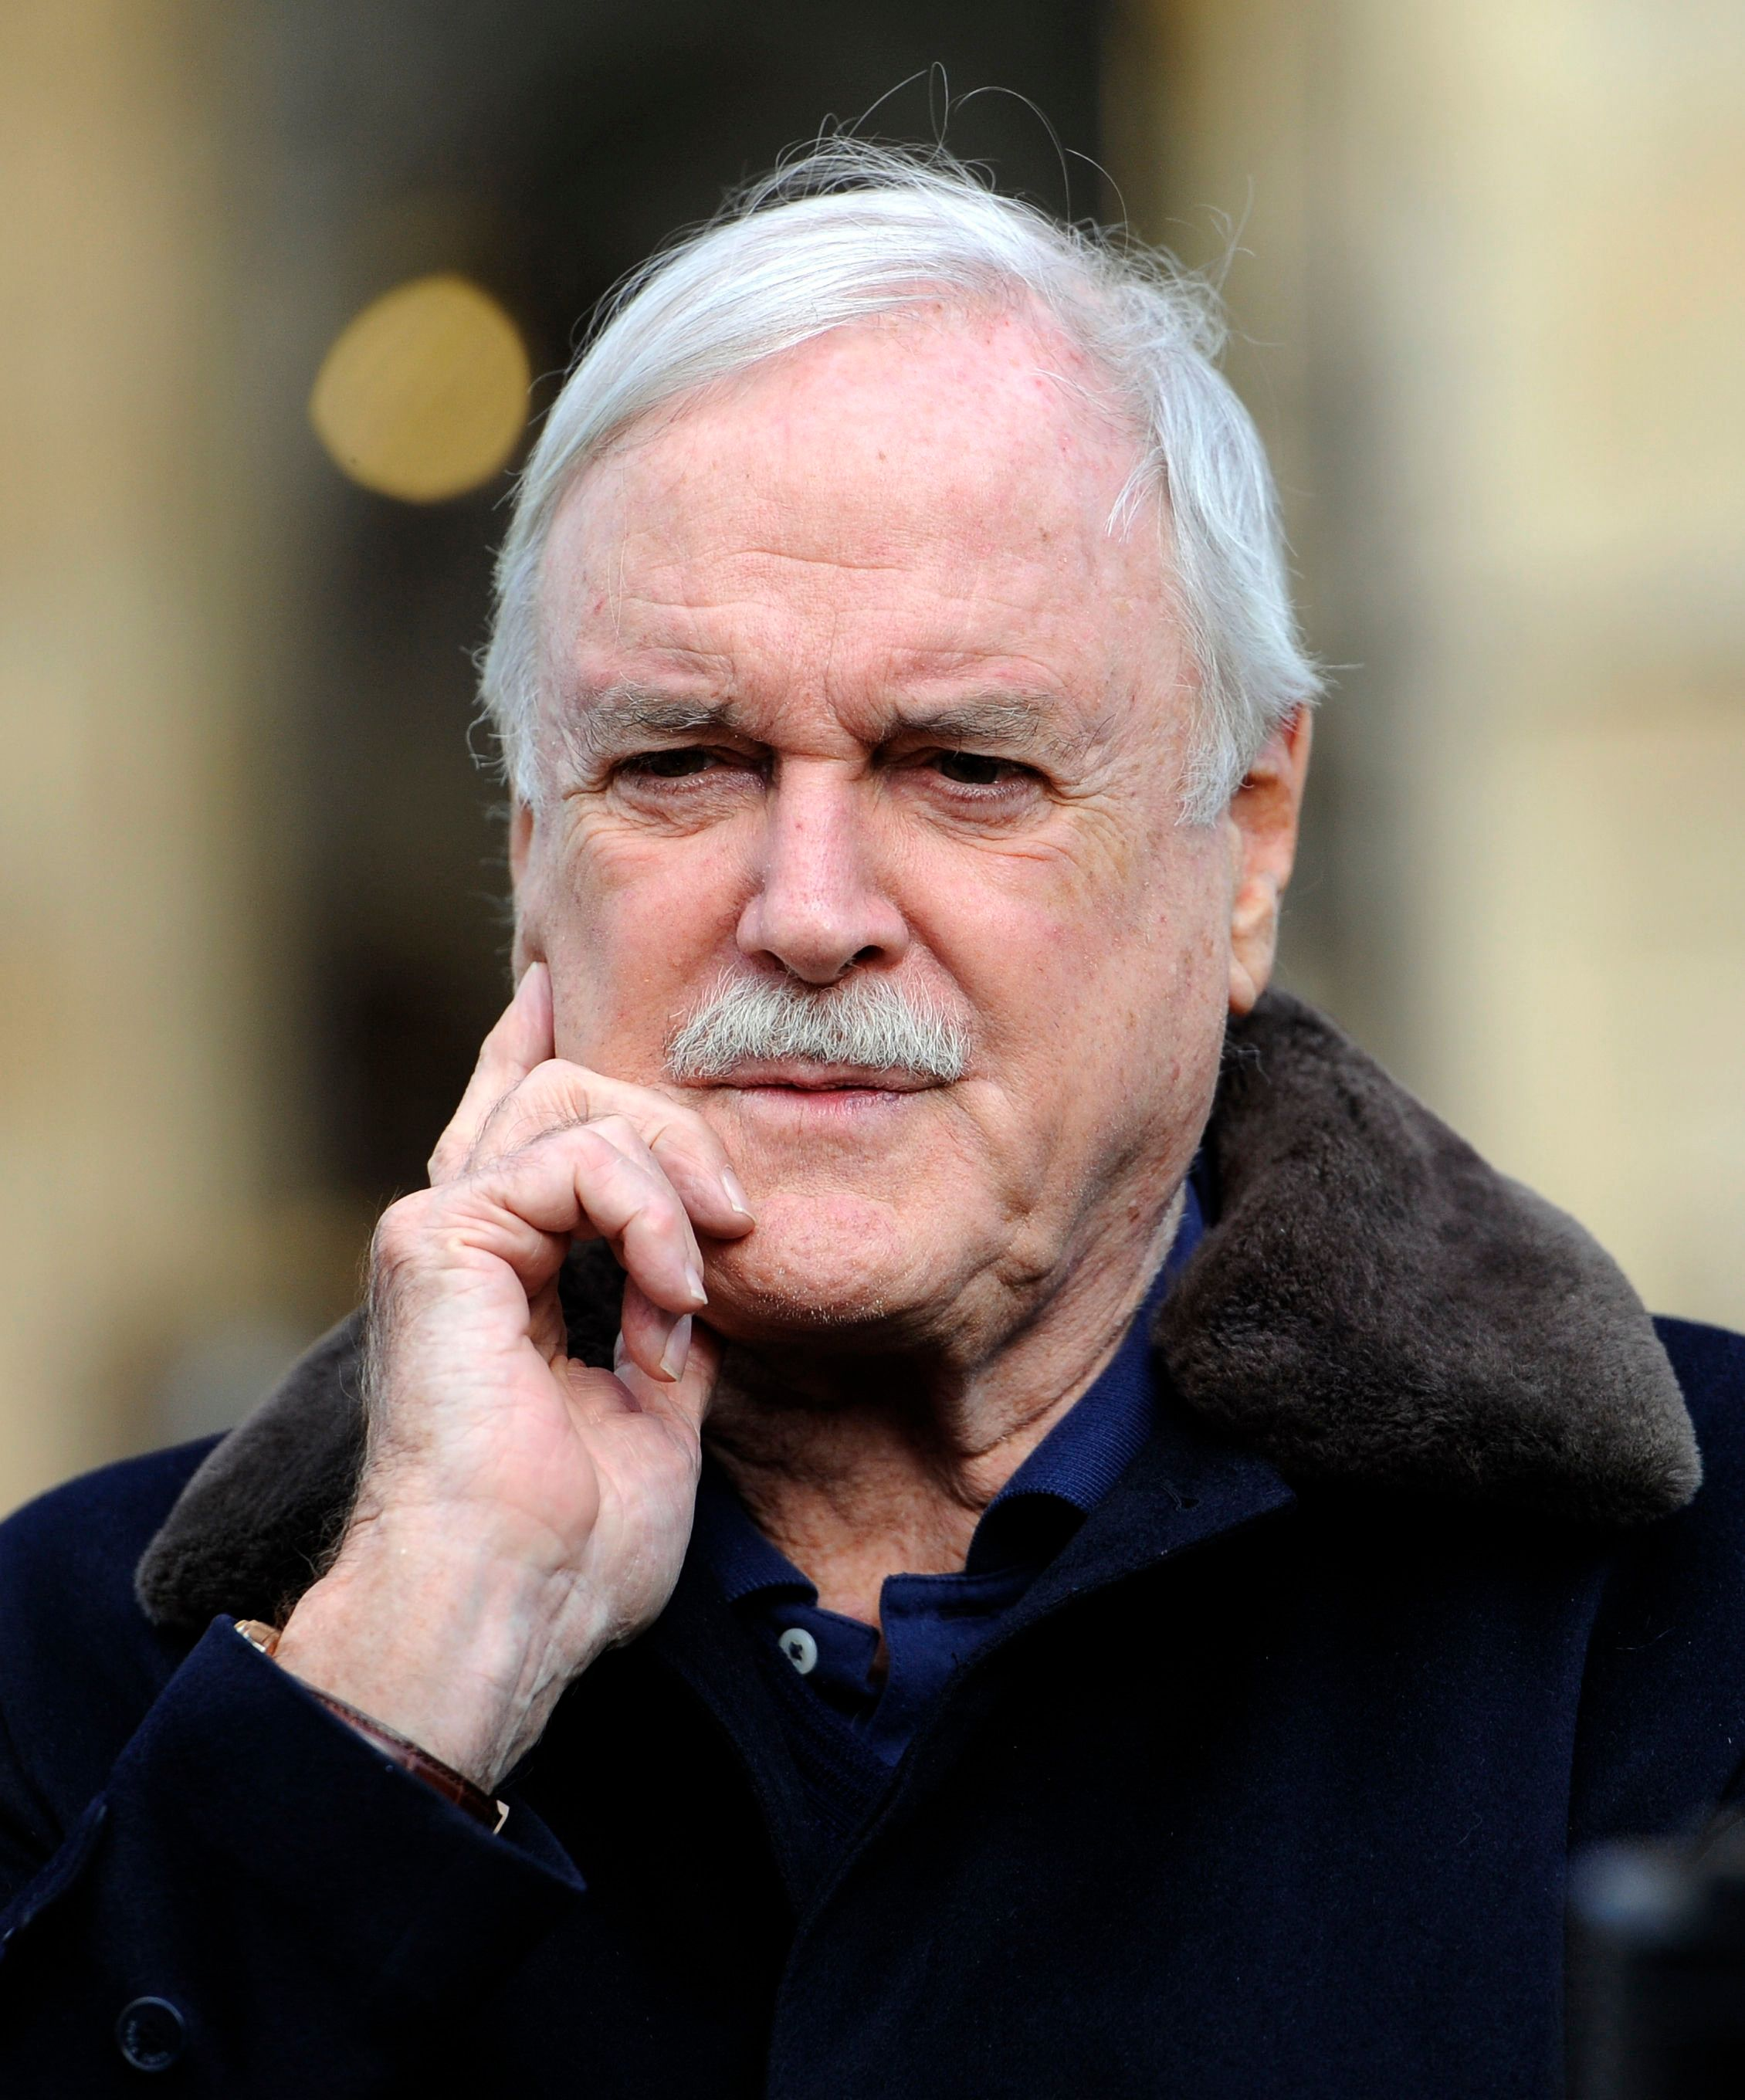 John Cleese has explained the root of the problem with Piers